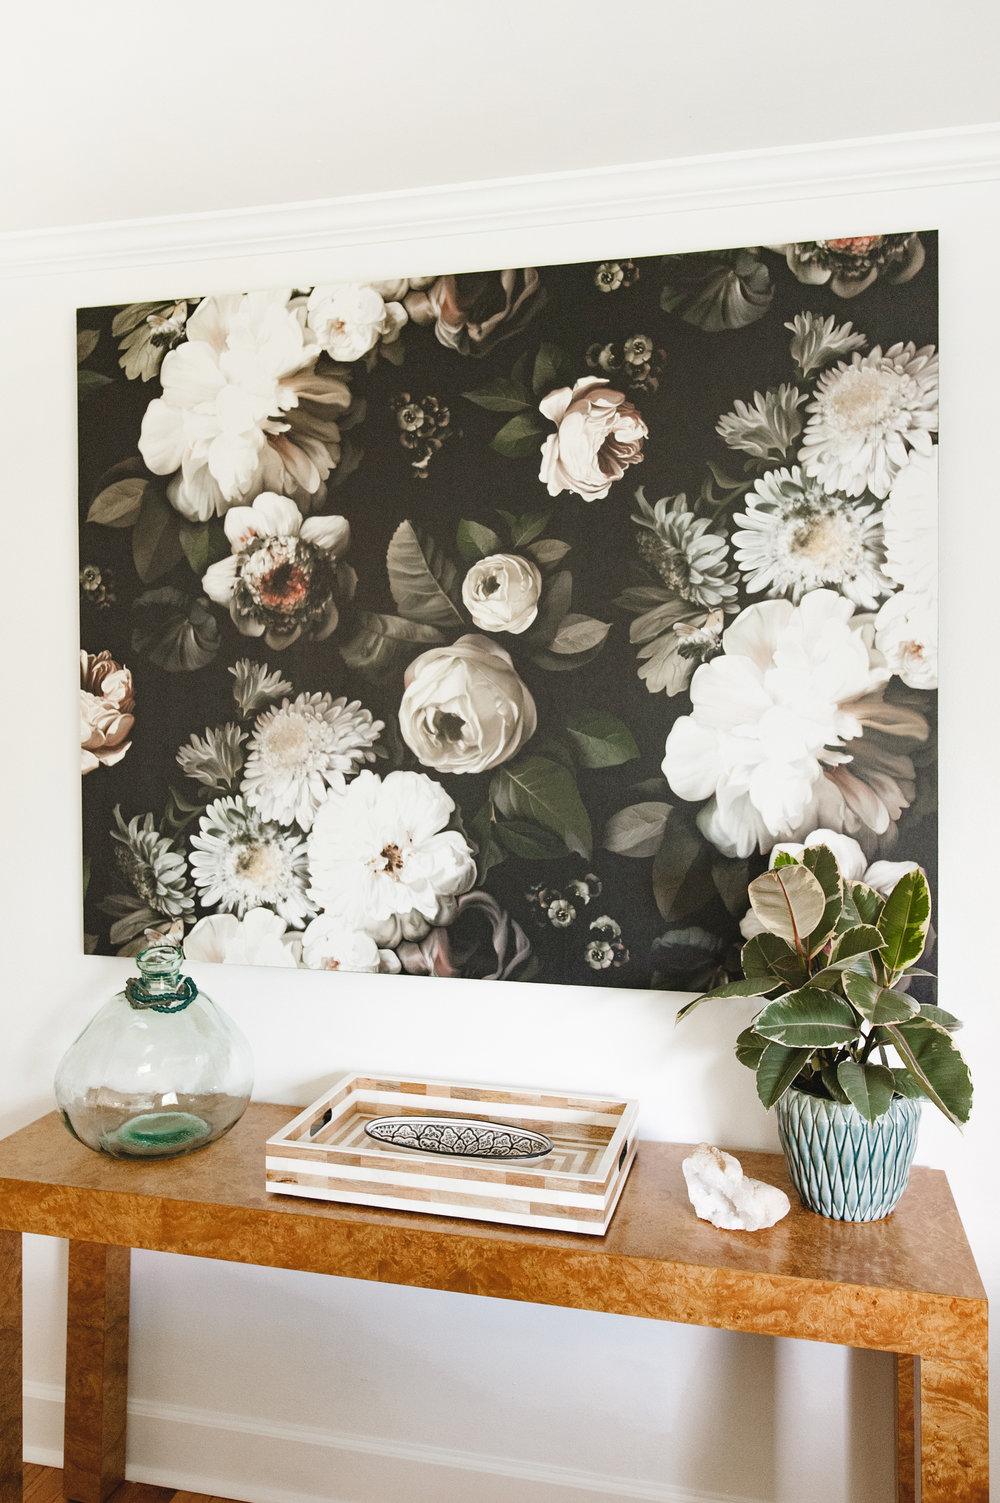 DIY: Wallpaper Without the Commitment